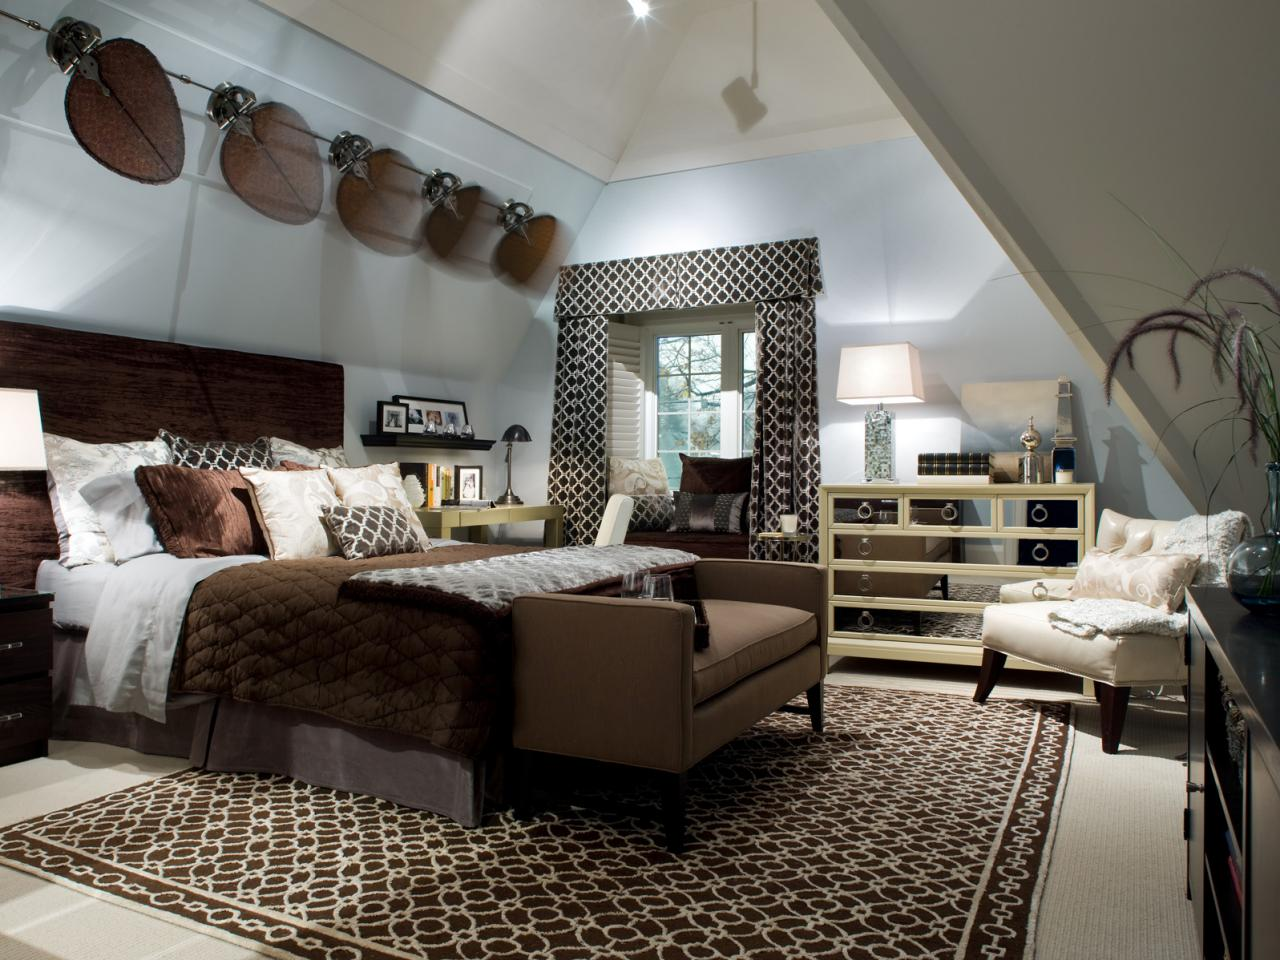 10 Bedroom Retreats From Candice Olson Bedrooms Bedroom Decorating Ideas Hgtv